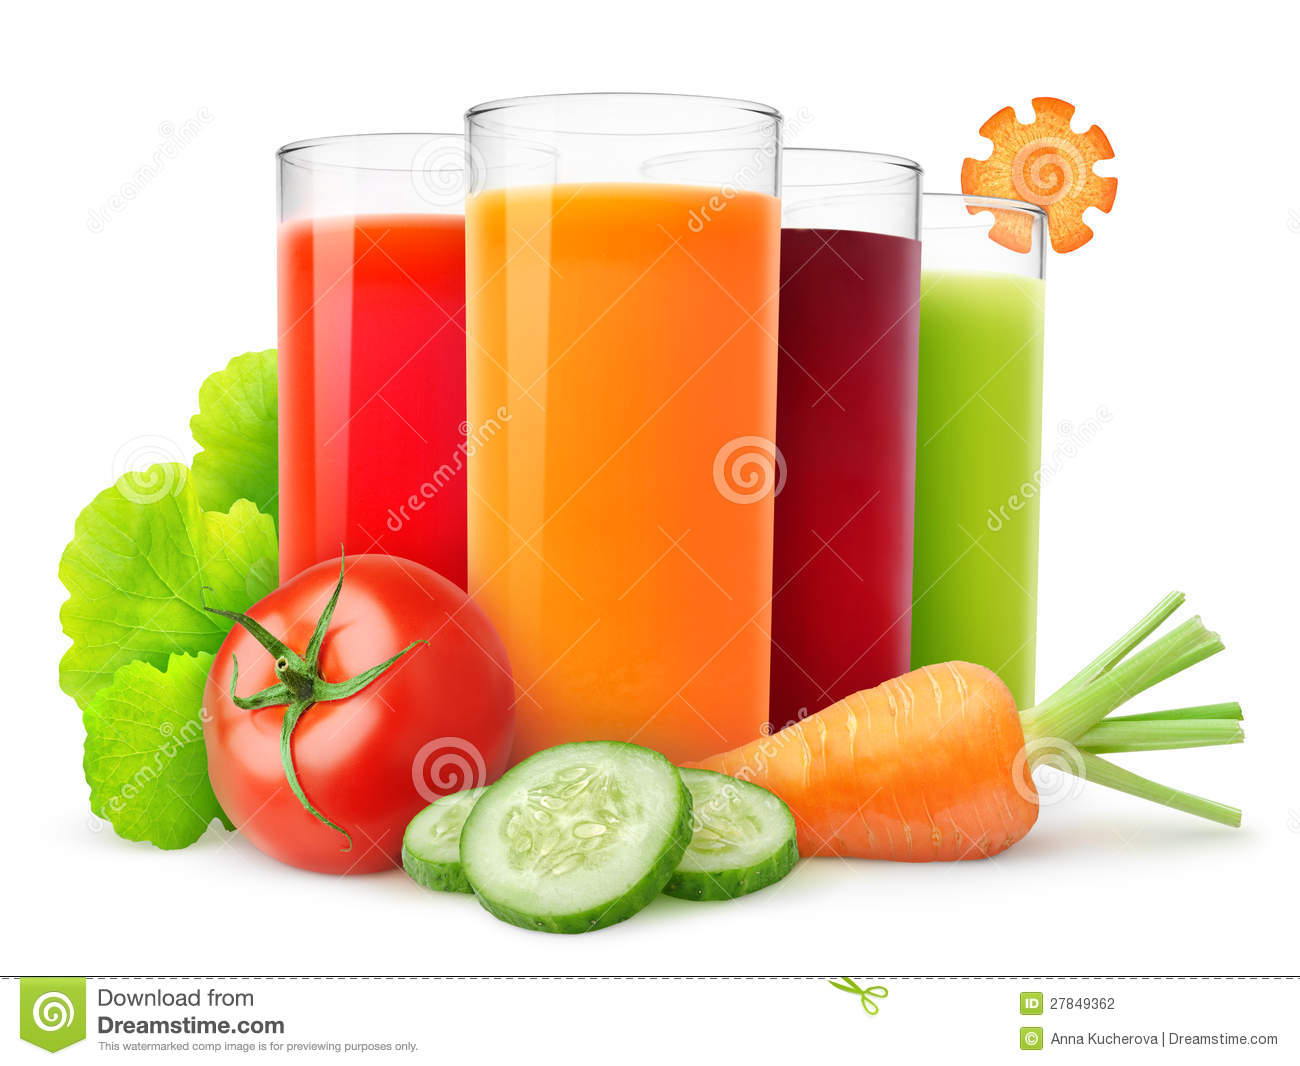 is a tomato a fruit or a vegetable fruit juice not healthy